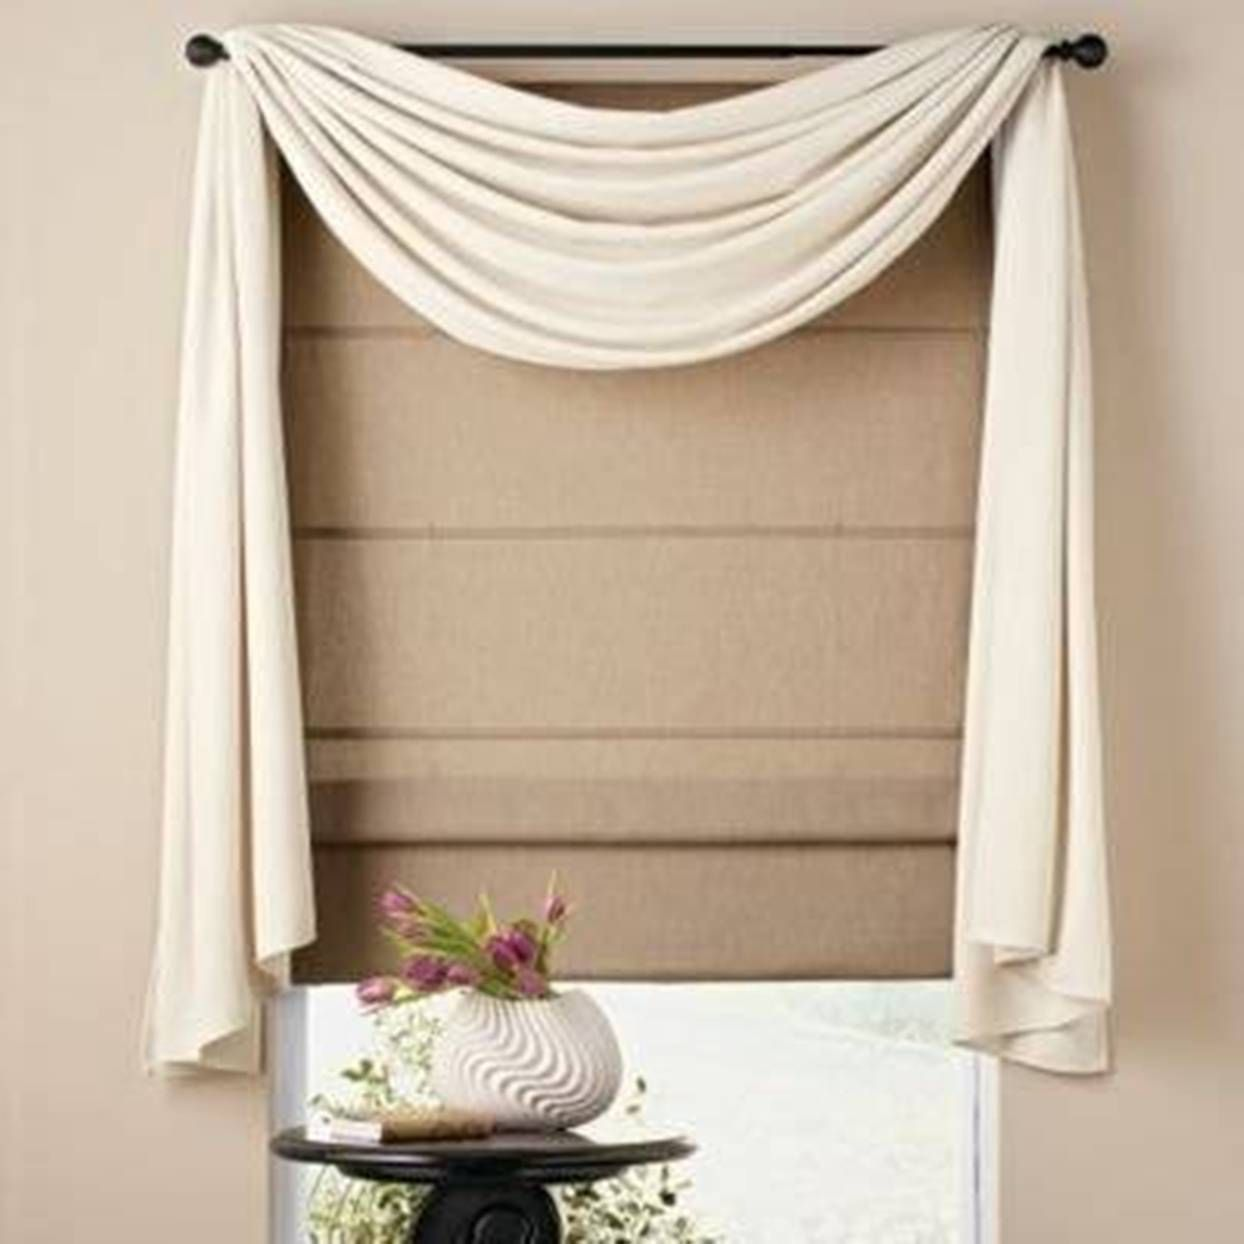 Living Room Curtain Idea   Already Have The Blind And Rod, Just Need  Appropriate Fabric To Drape :)